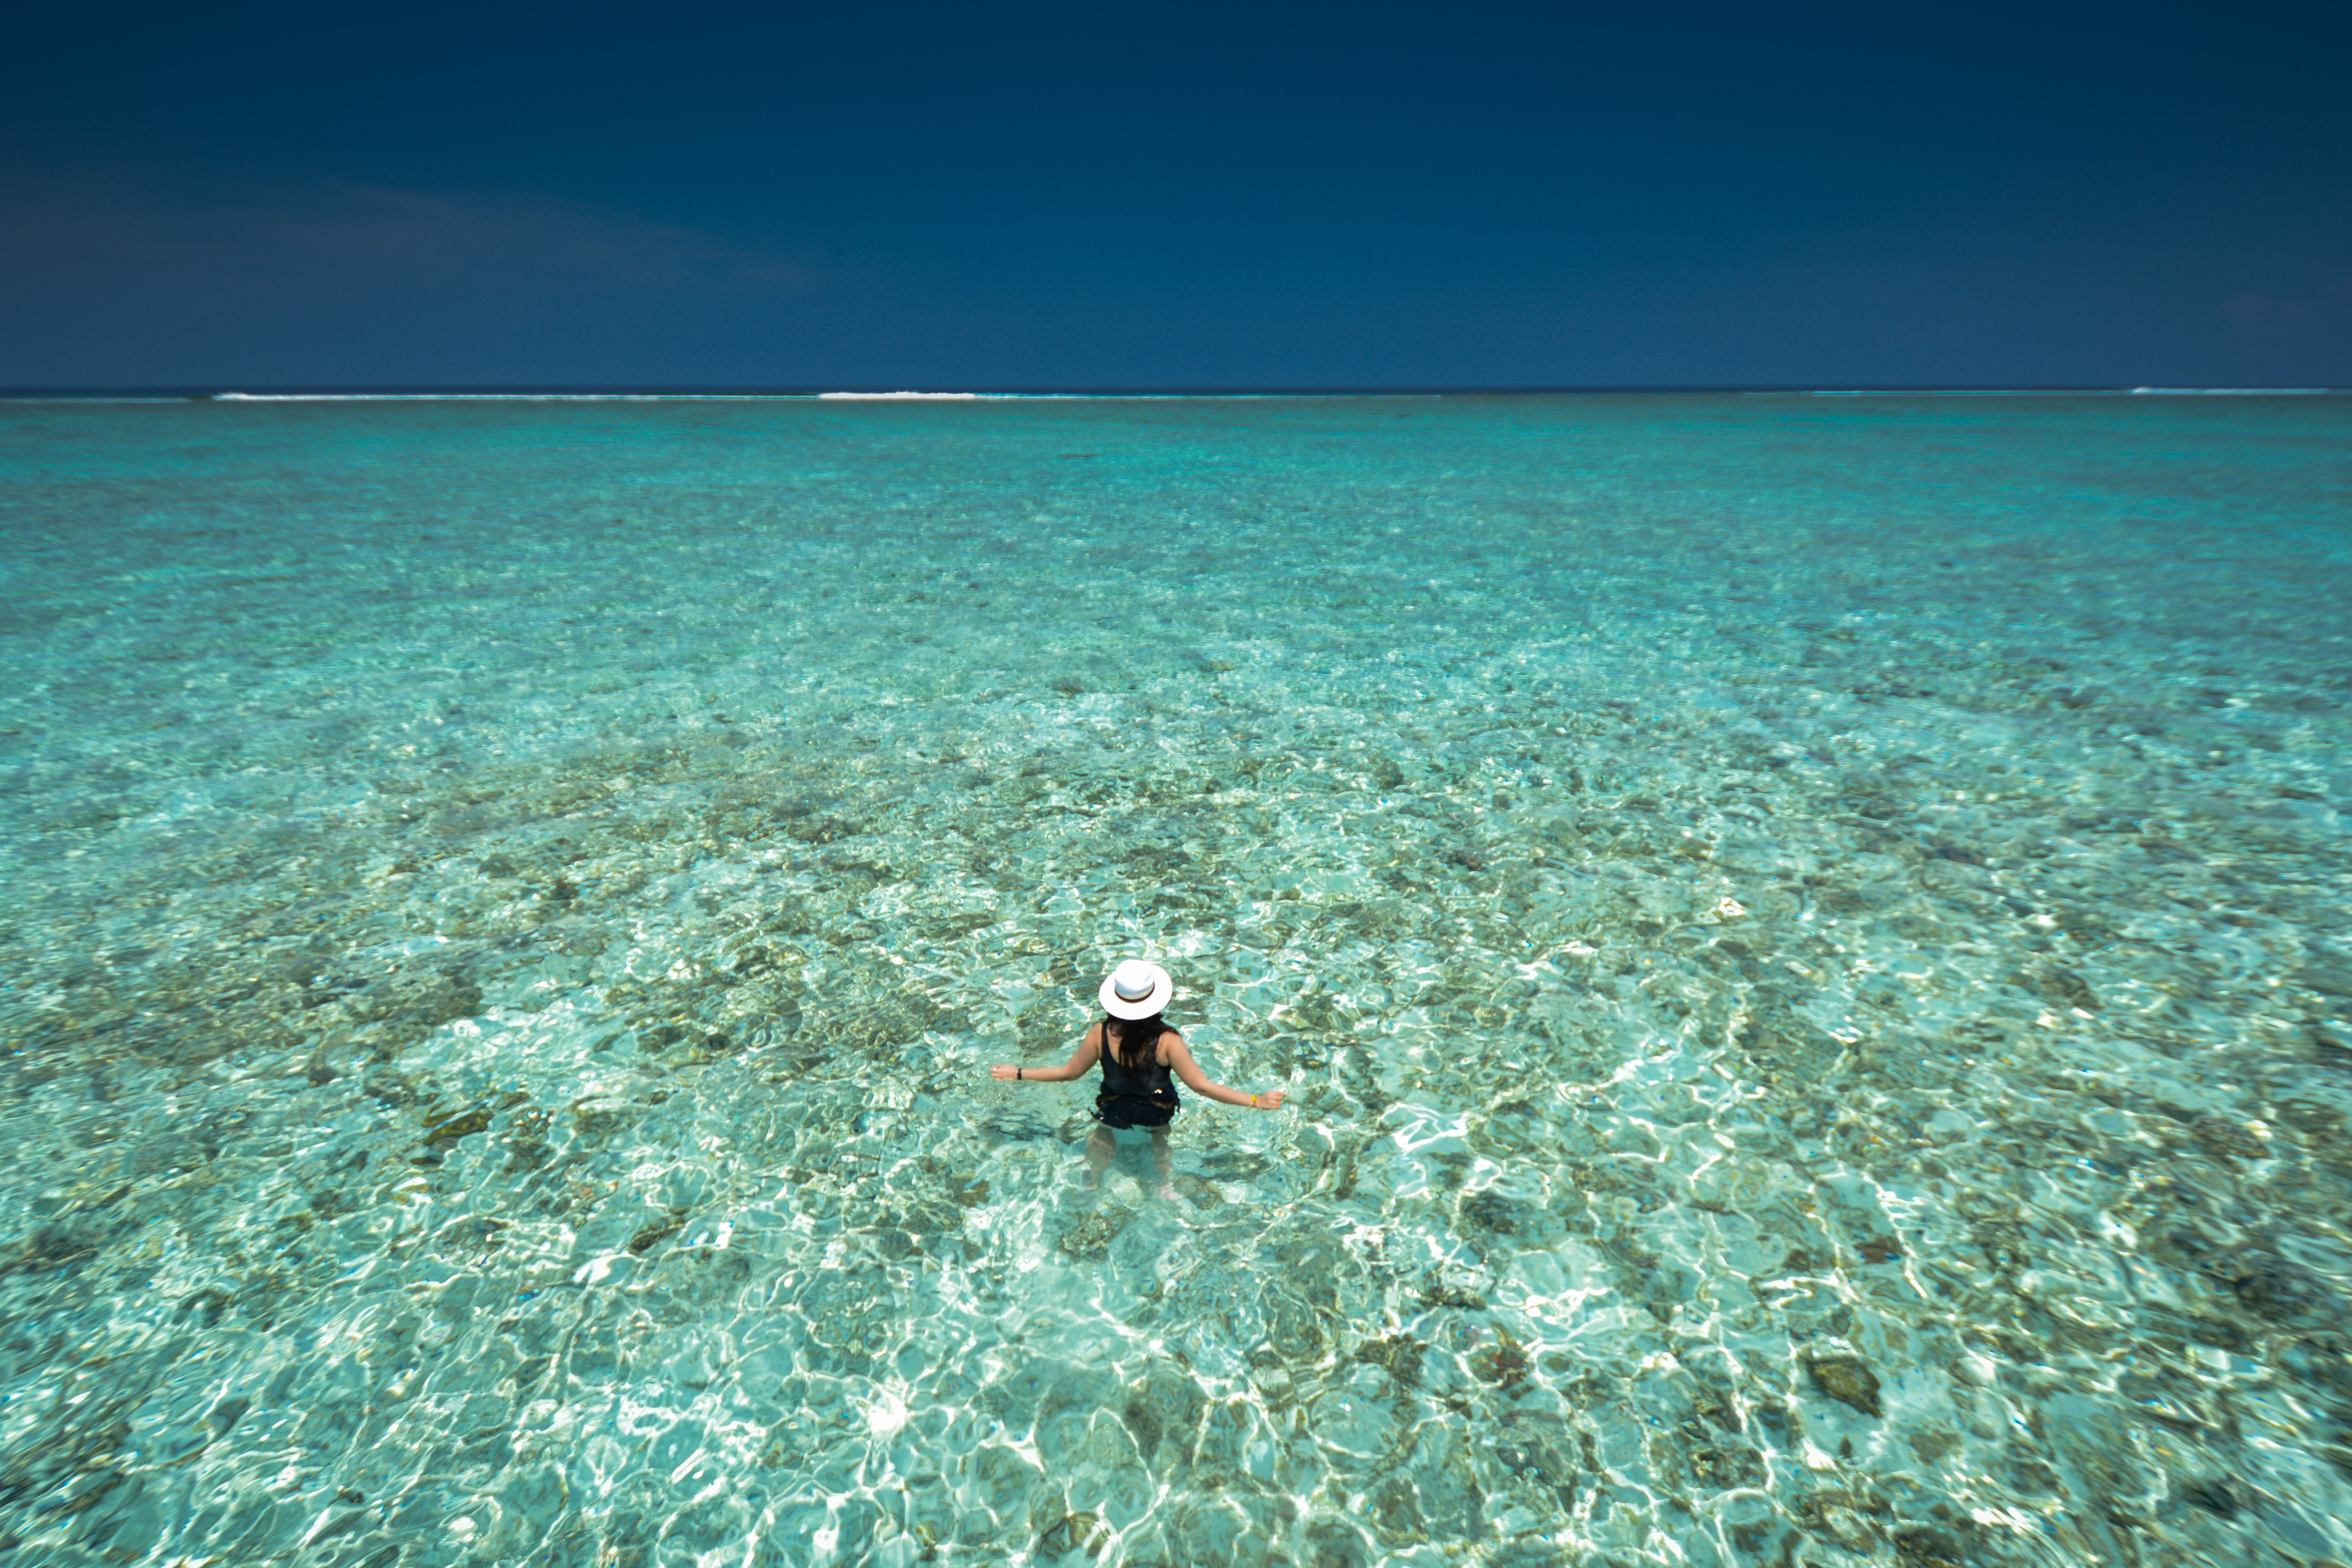 A woman in a white hat standing in clear waist-high water with the sea coast stretching far into the distance